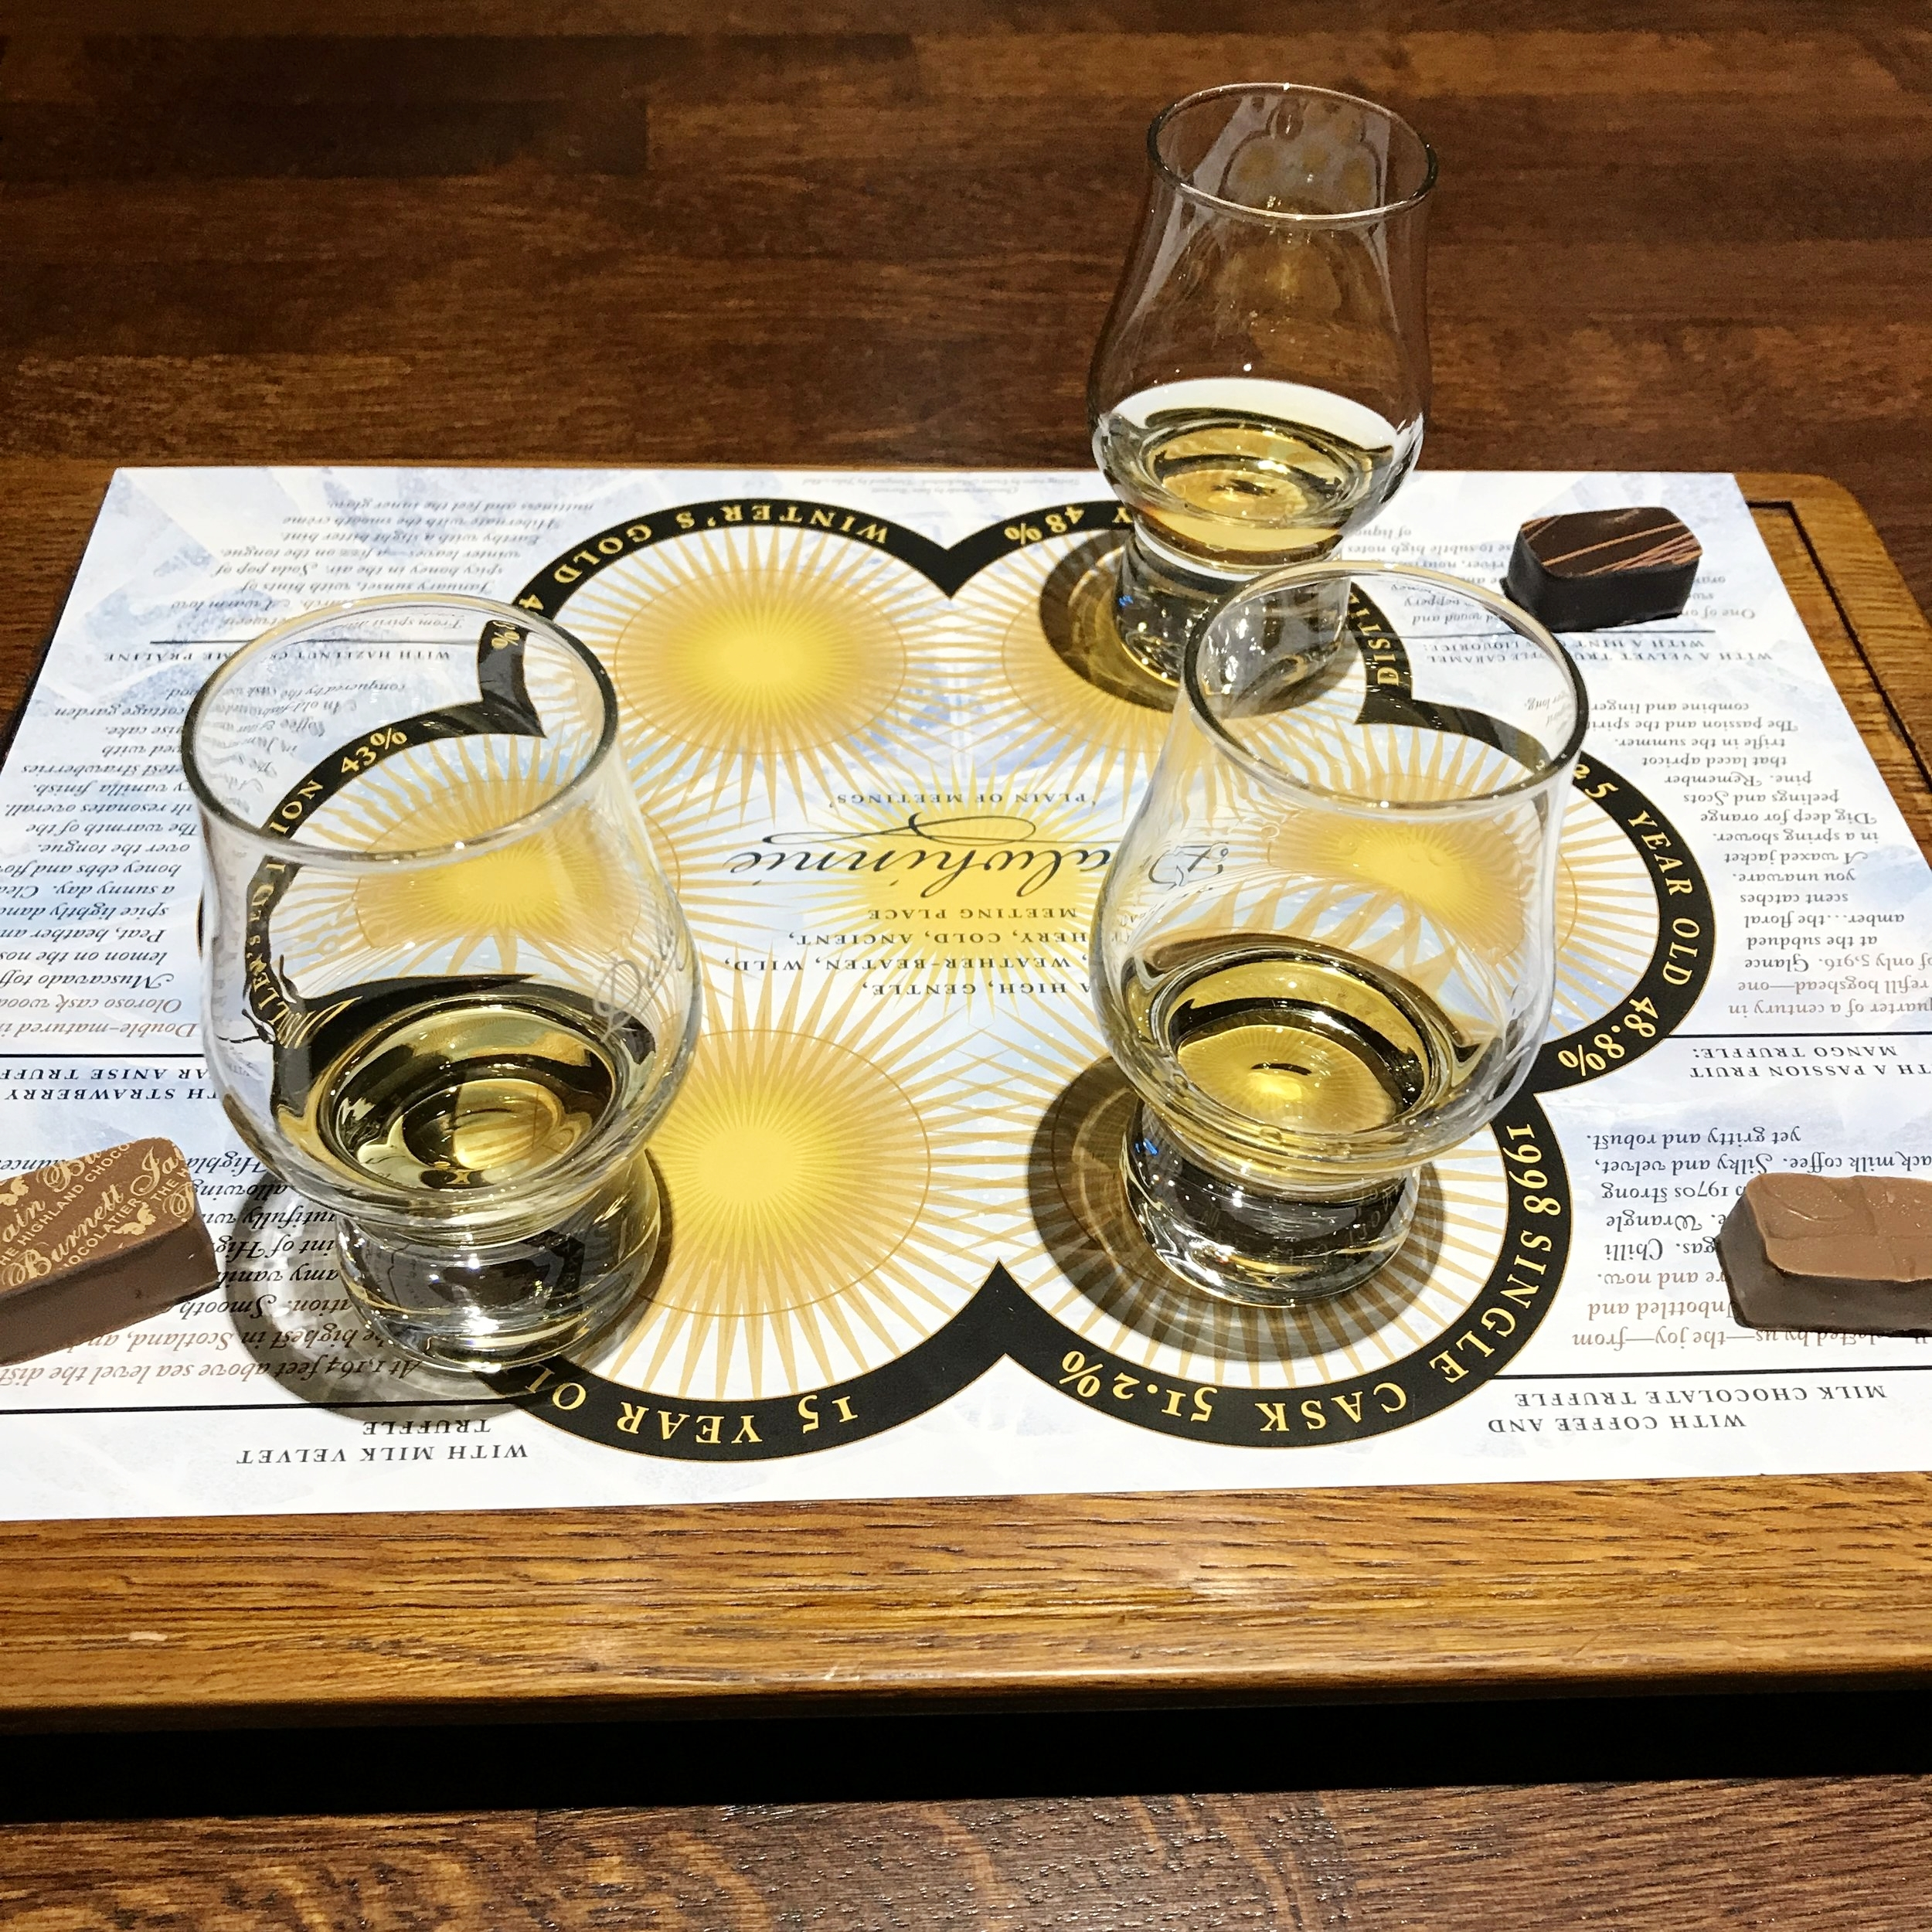 I'm still dreaming about this whisky and chocolate tasting at Dalwhinnie Distillery. Go for the hot chocolate if whisky is not your thing (or do both, like me).